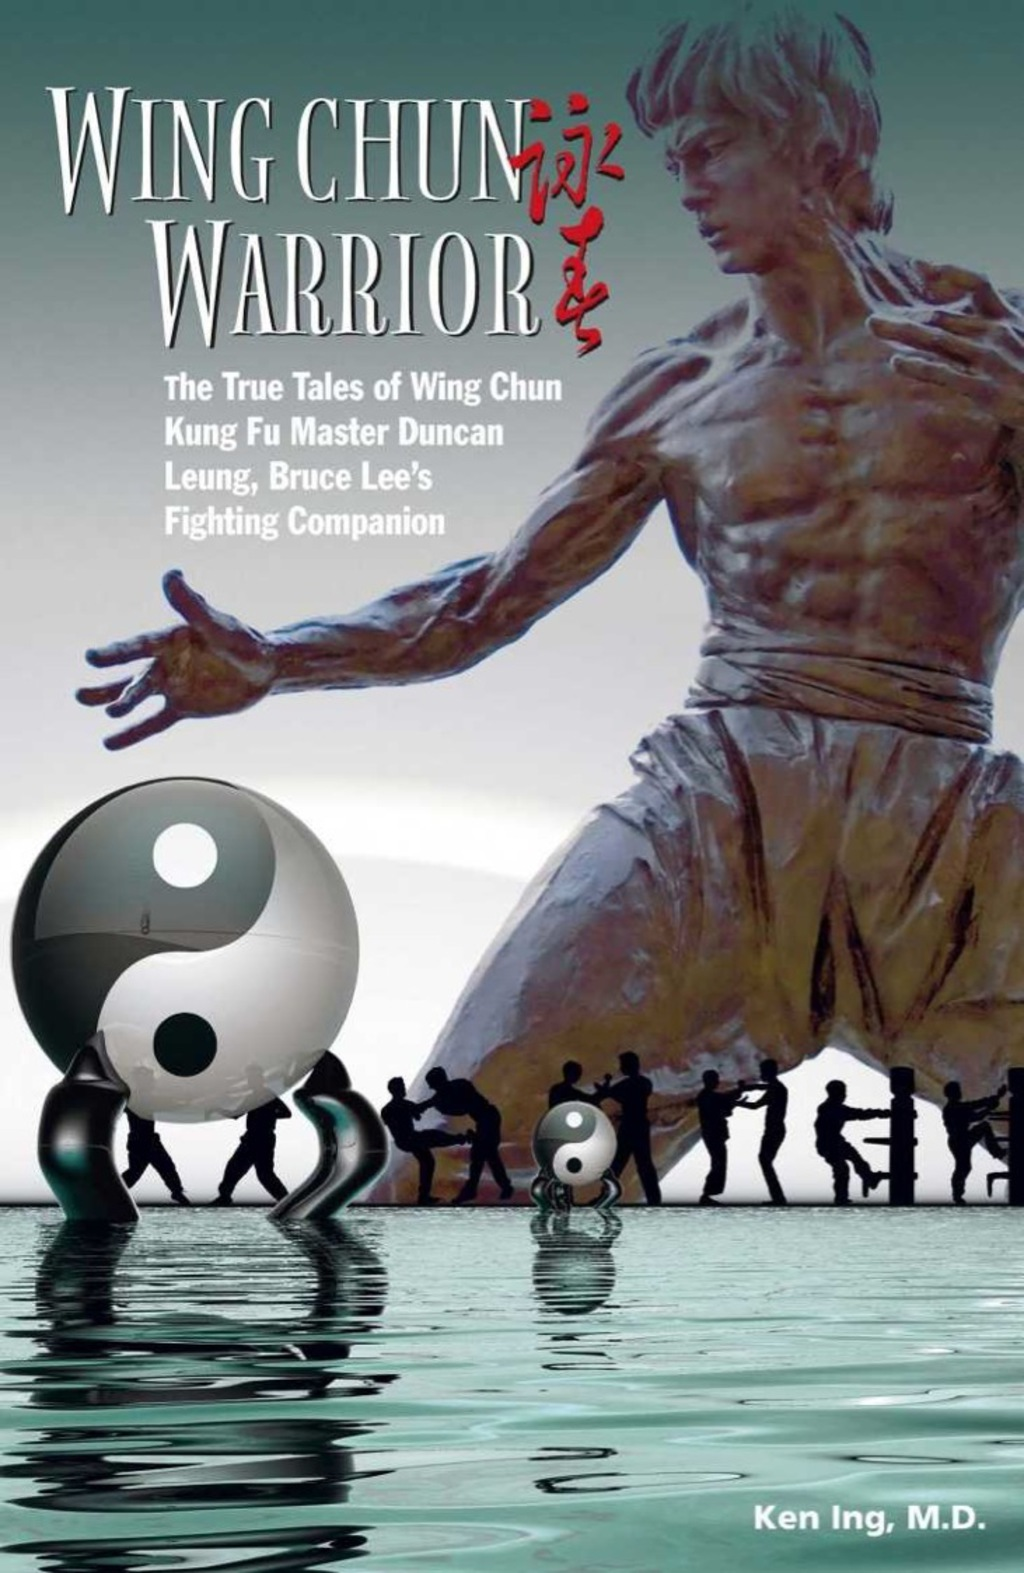 Wing Chun Warrior: The True Tales of Wing Chun Kung Fu Master Duncan Leung, Bruce Lee's Fighting Companion (ebook) eBooks